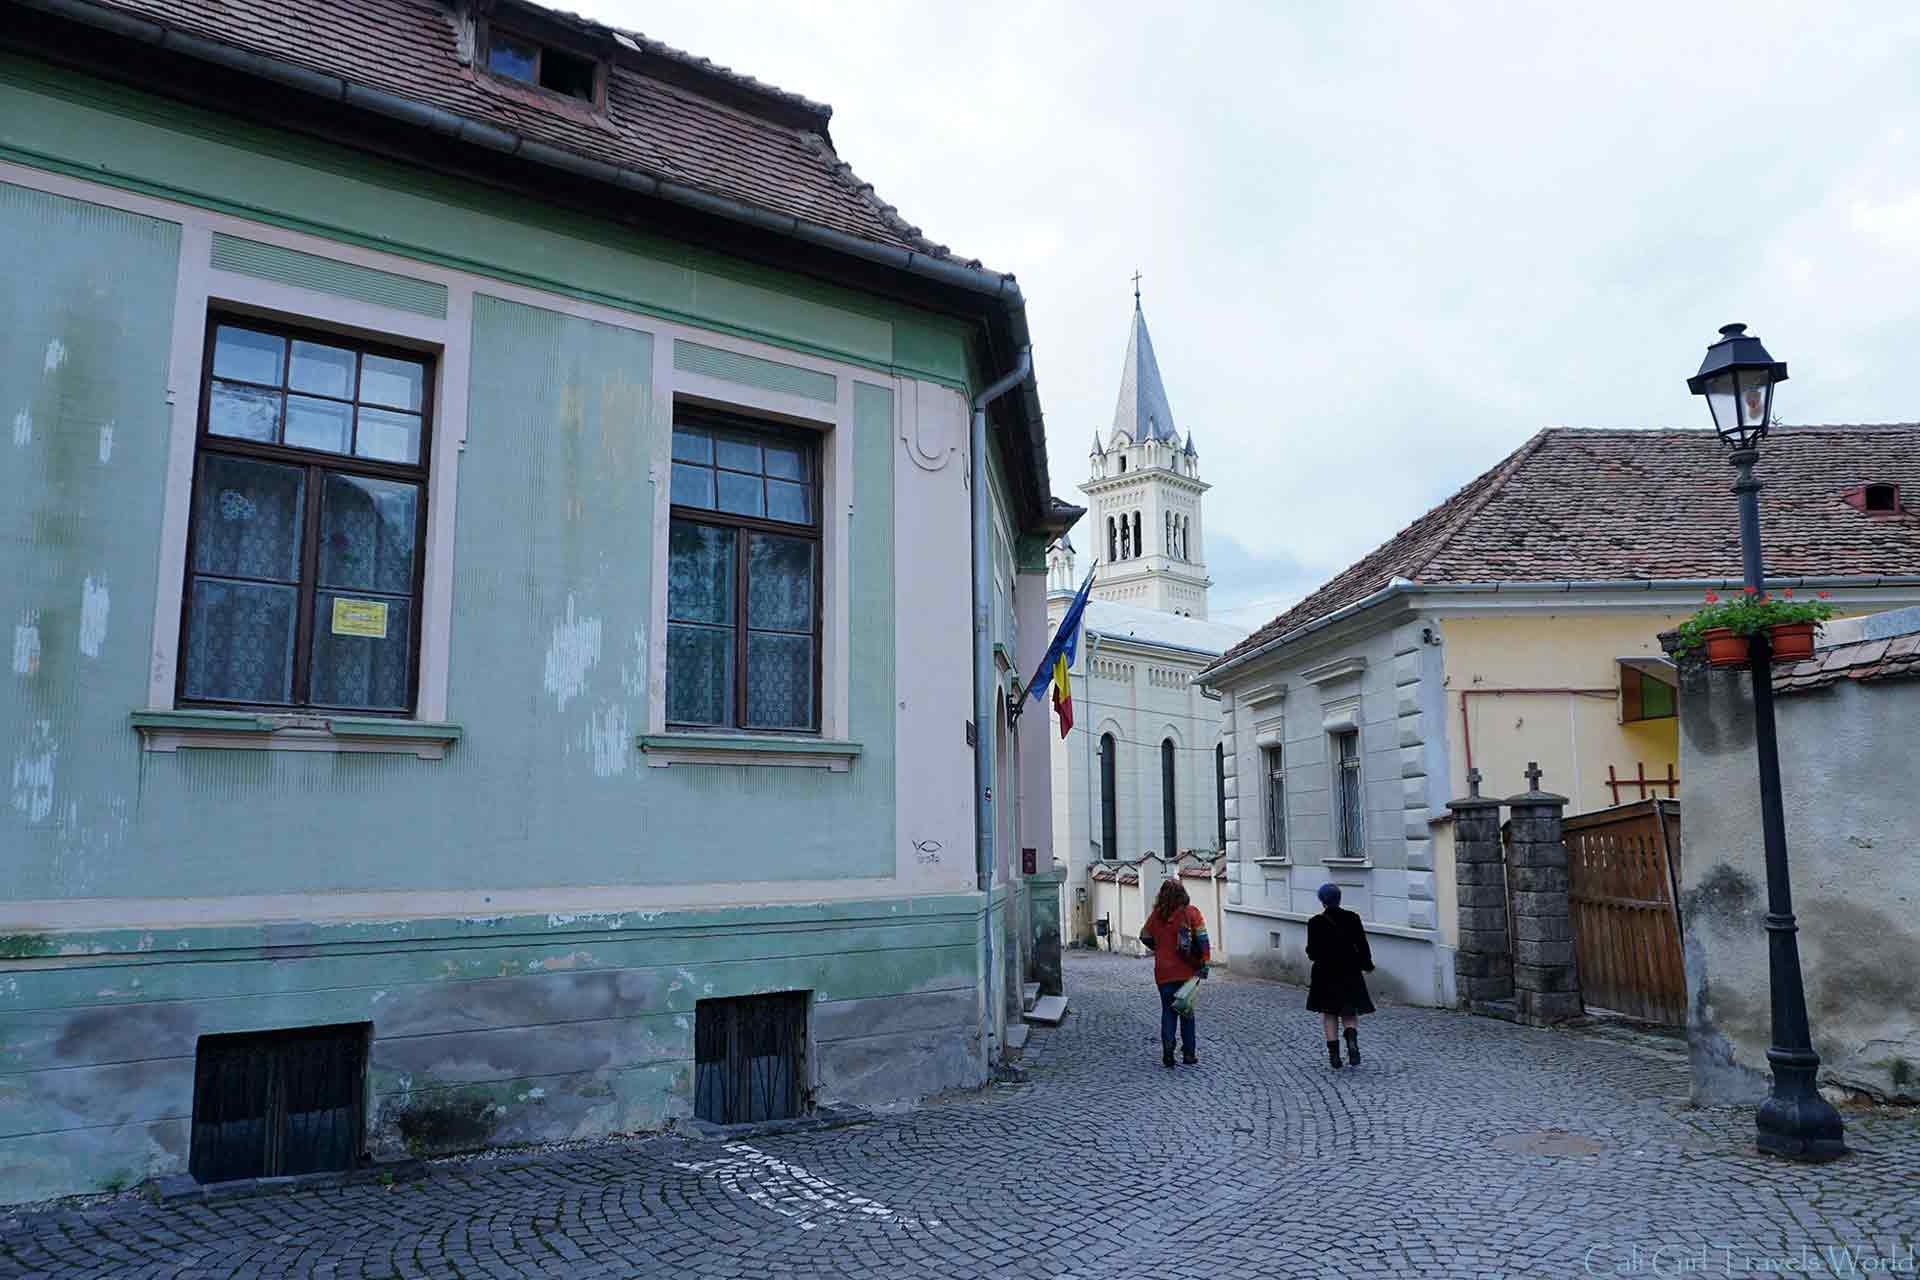 Two women walking along a quaint medieval street in Sighisoara, Transylvania, Romania.